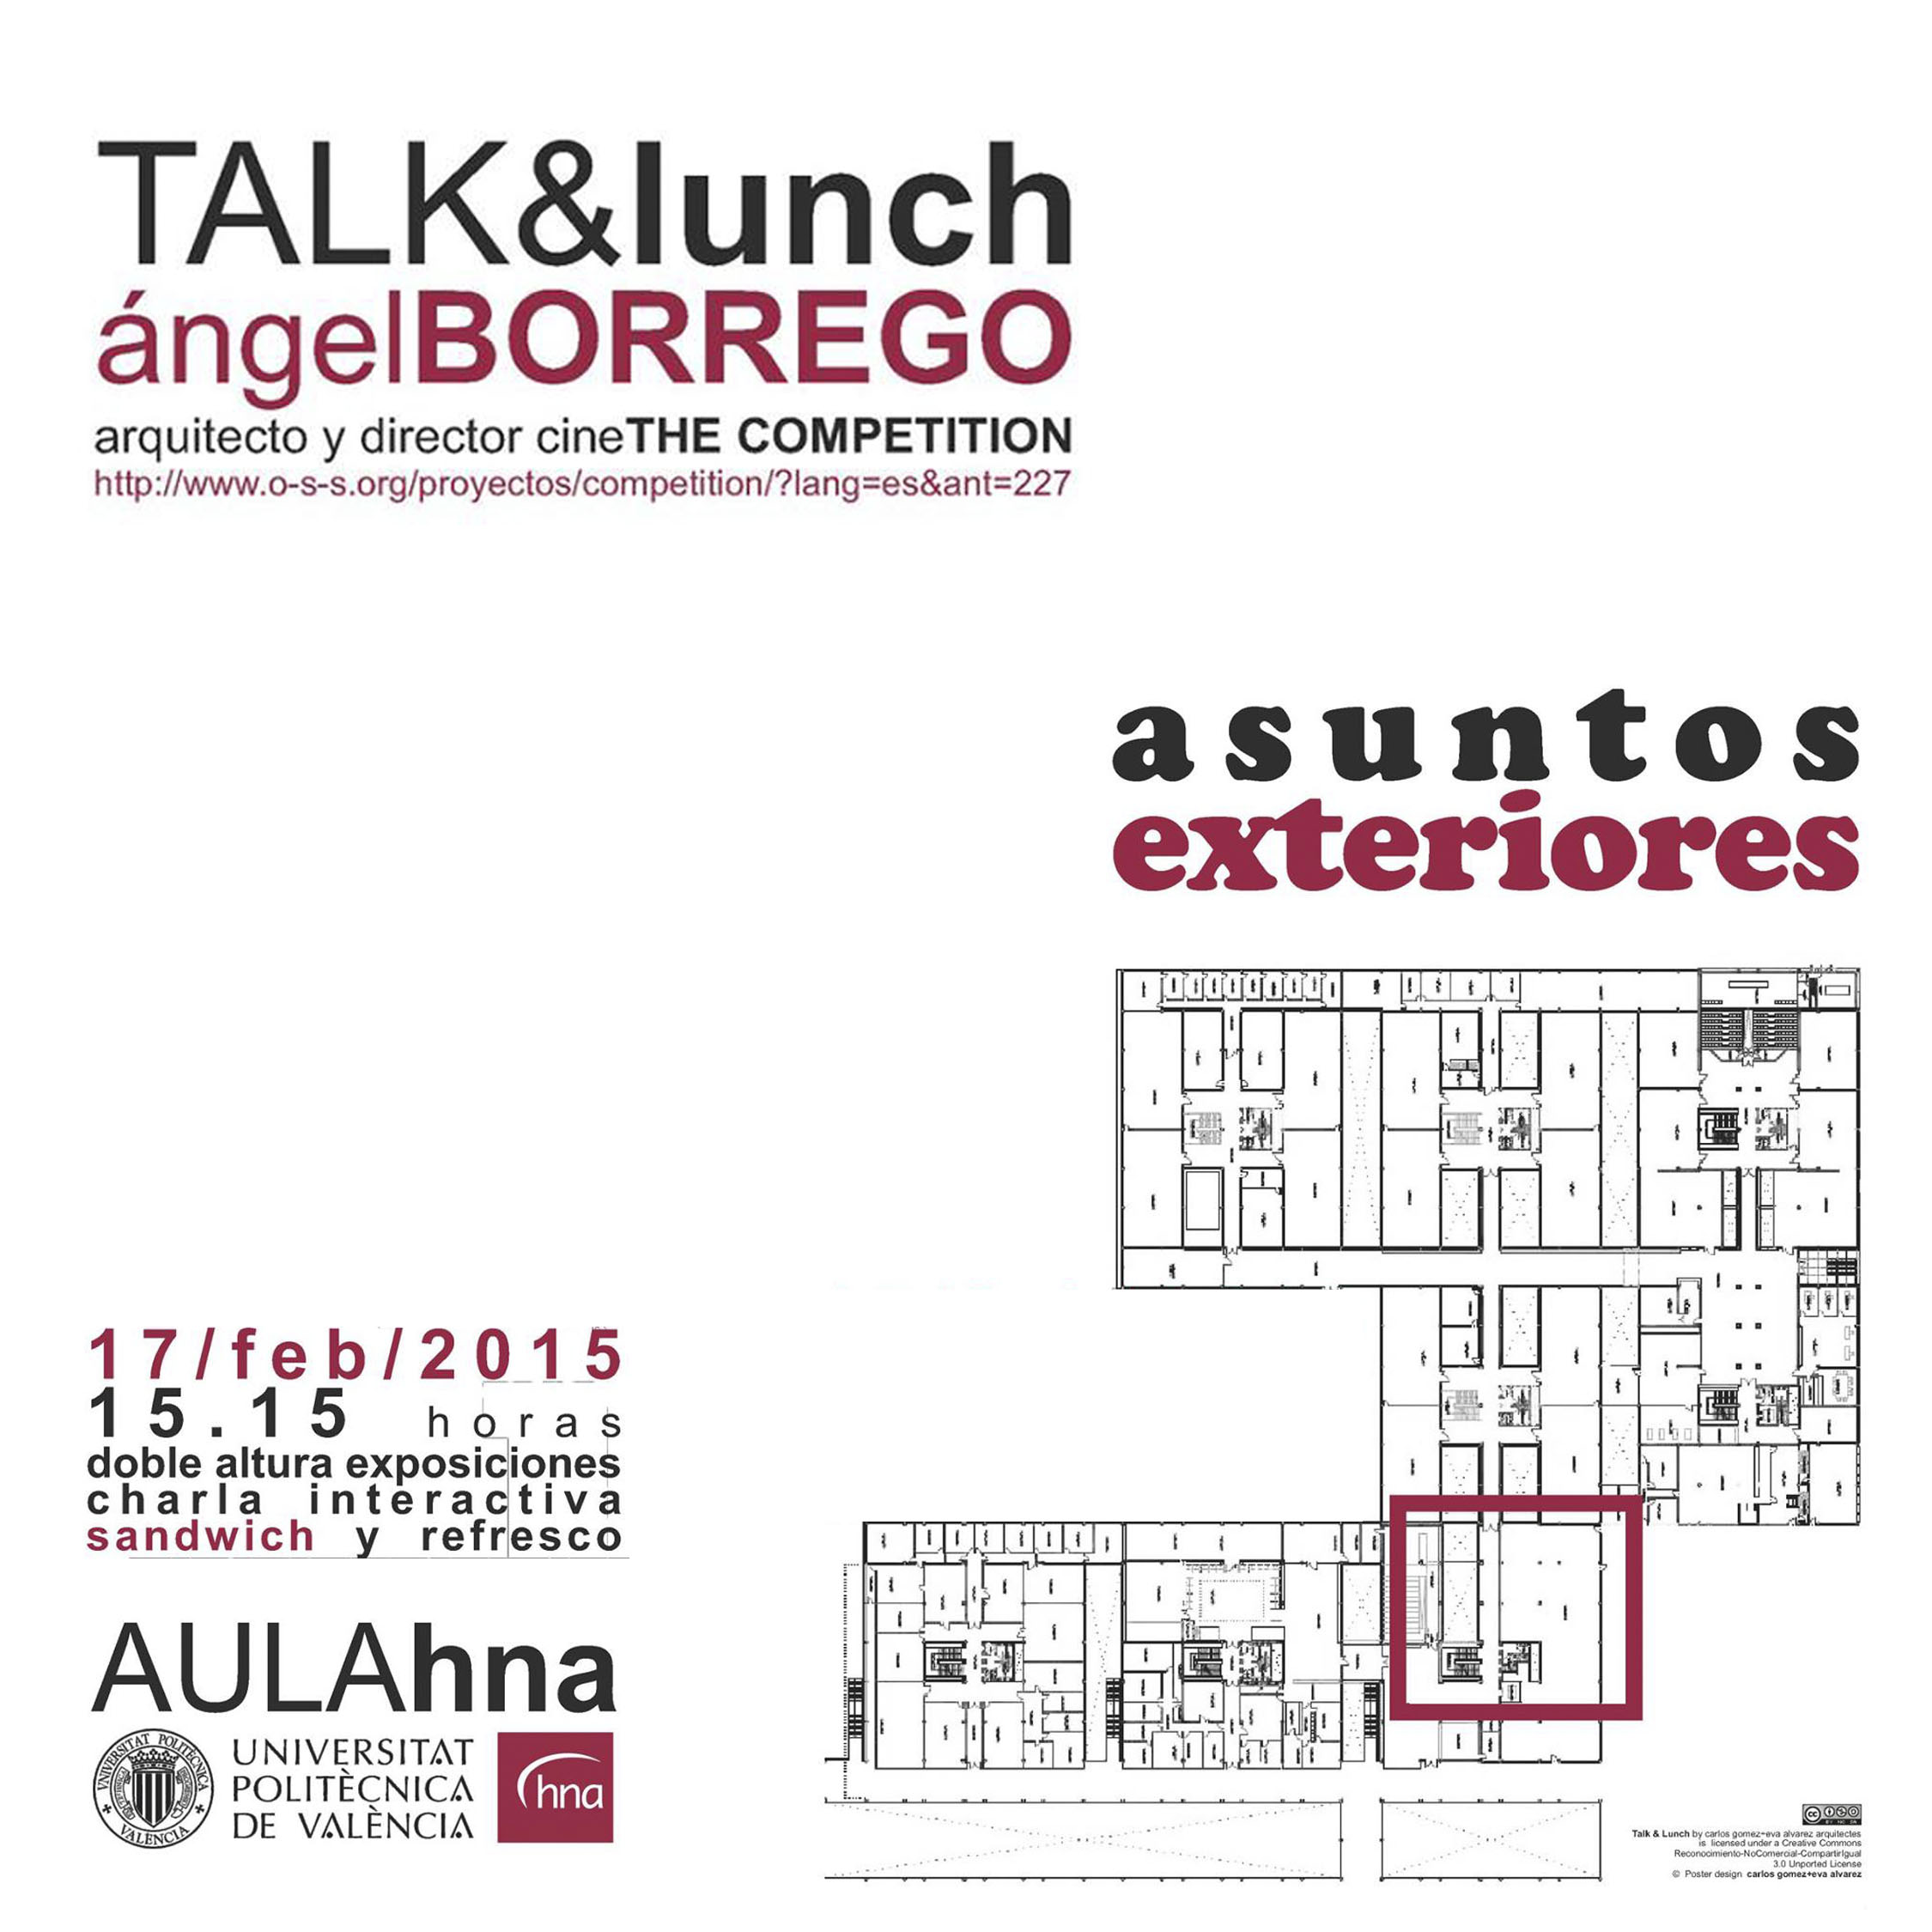 TALK & lunch: Asuntos exteriores